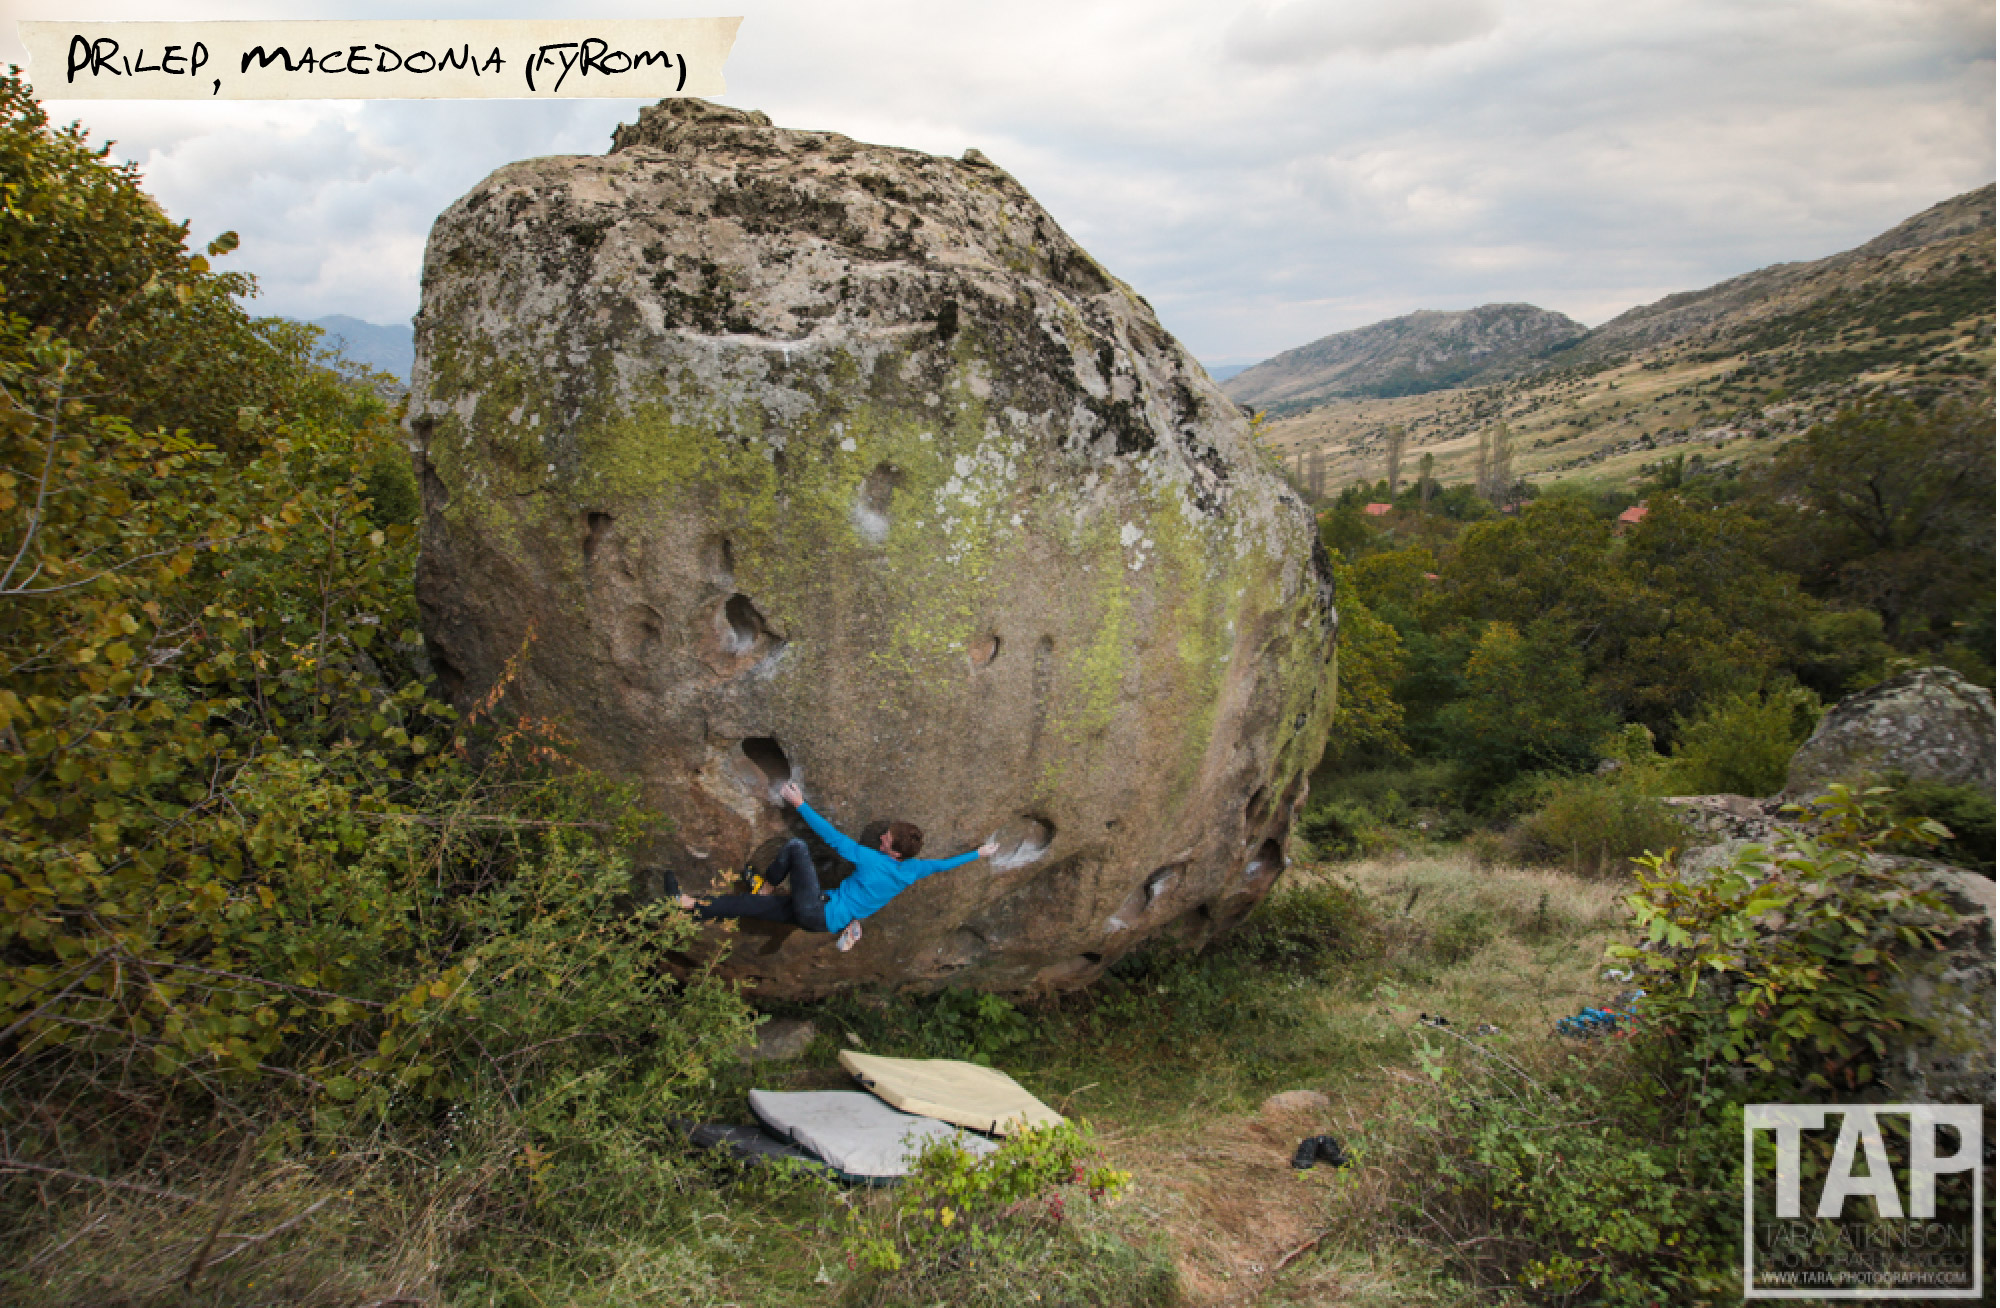 Prilep, Macedonia; Some call it the capital of Balkans bouldering. On these hills criss-crossed with trails made by sheep and goats, many vast, barely touched granite and gneiss boulder fields contemplate the scene. Pictured: Read Macadam